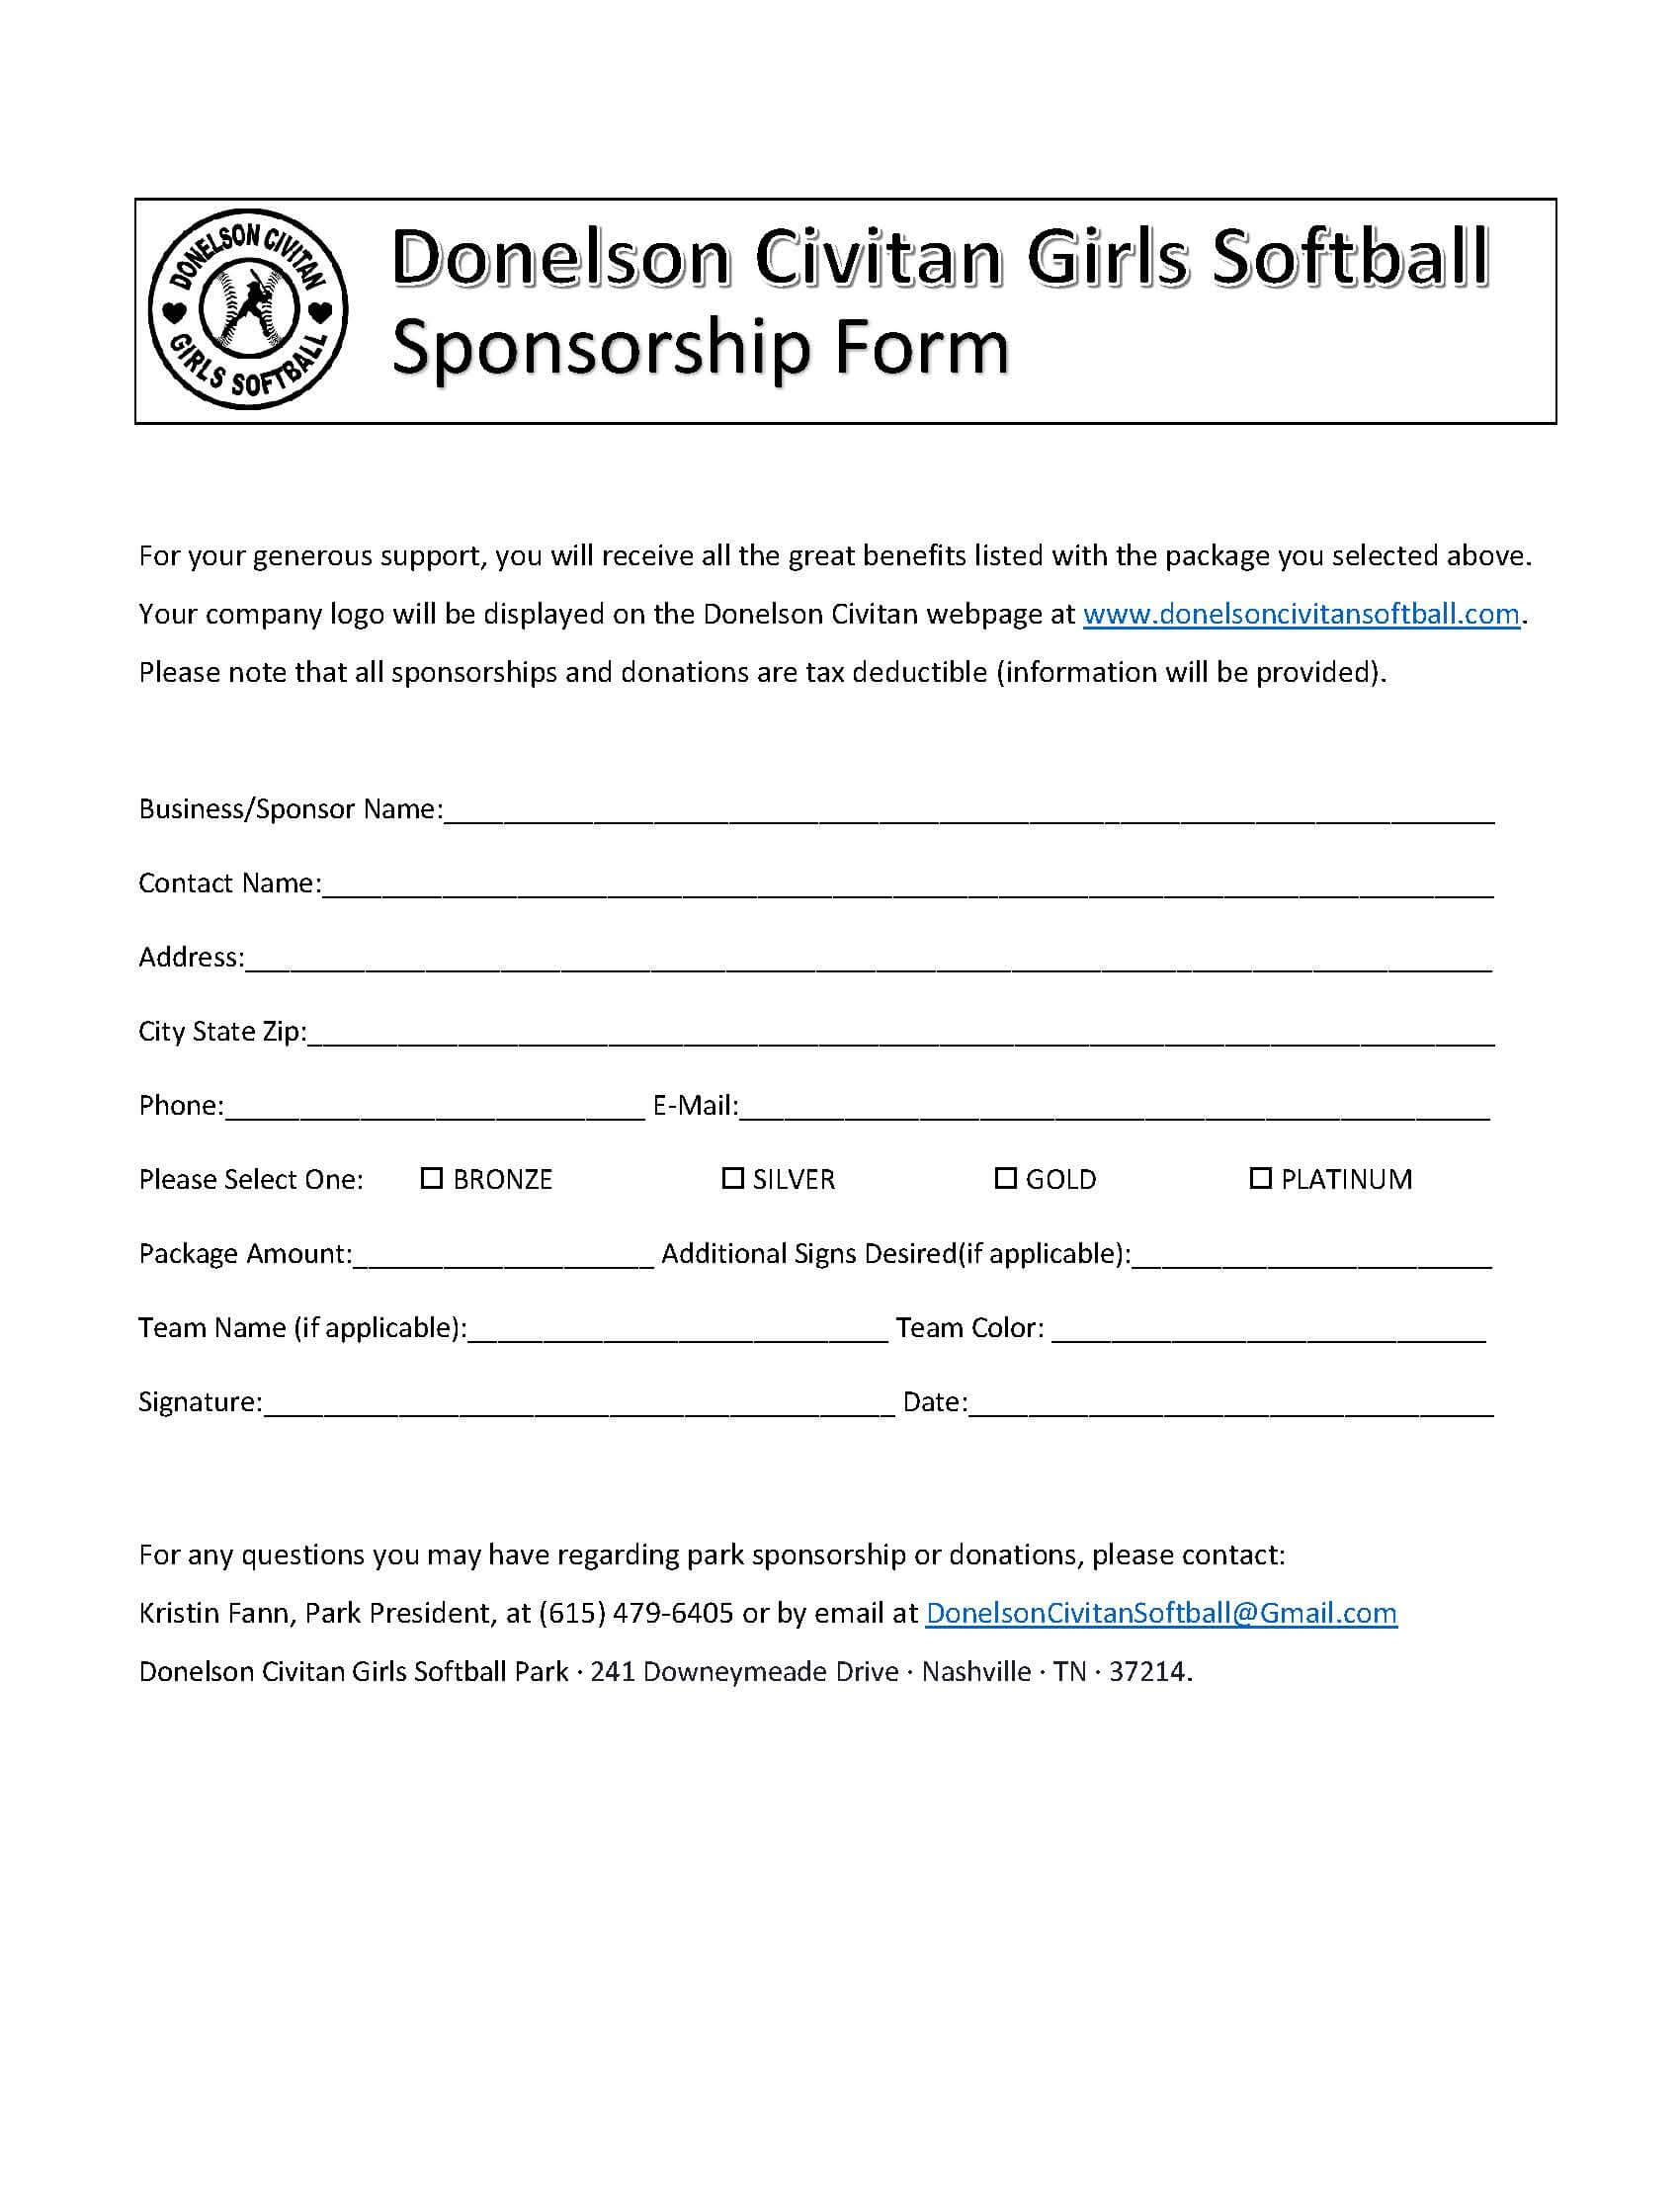 Sponsor Forms Templates Free ] - Template Sponsorship Form With Regard To Blank Sponsor Form Template Free